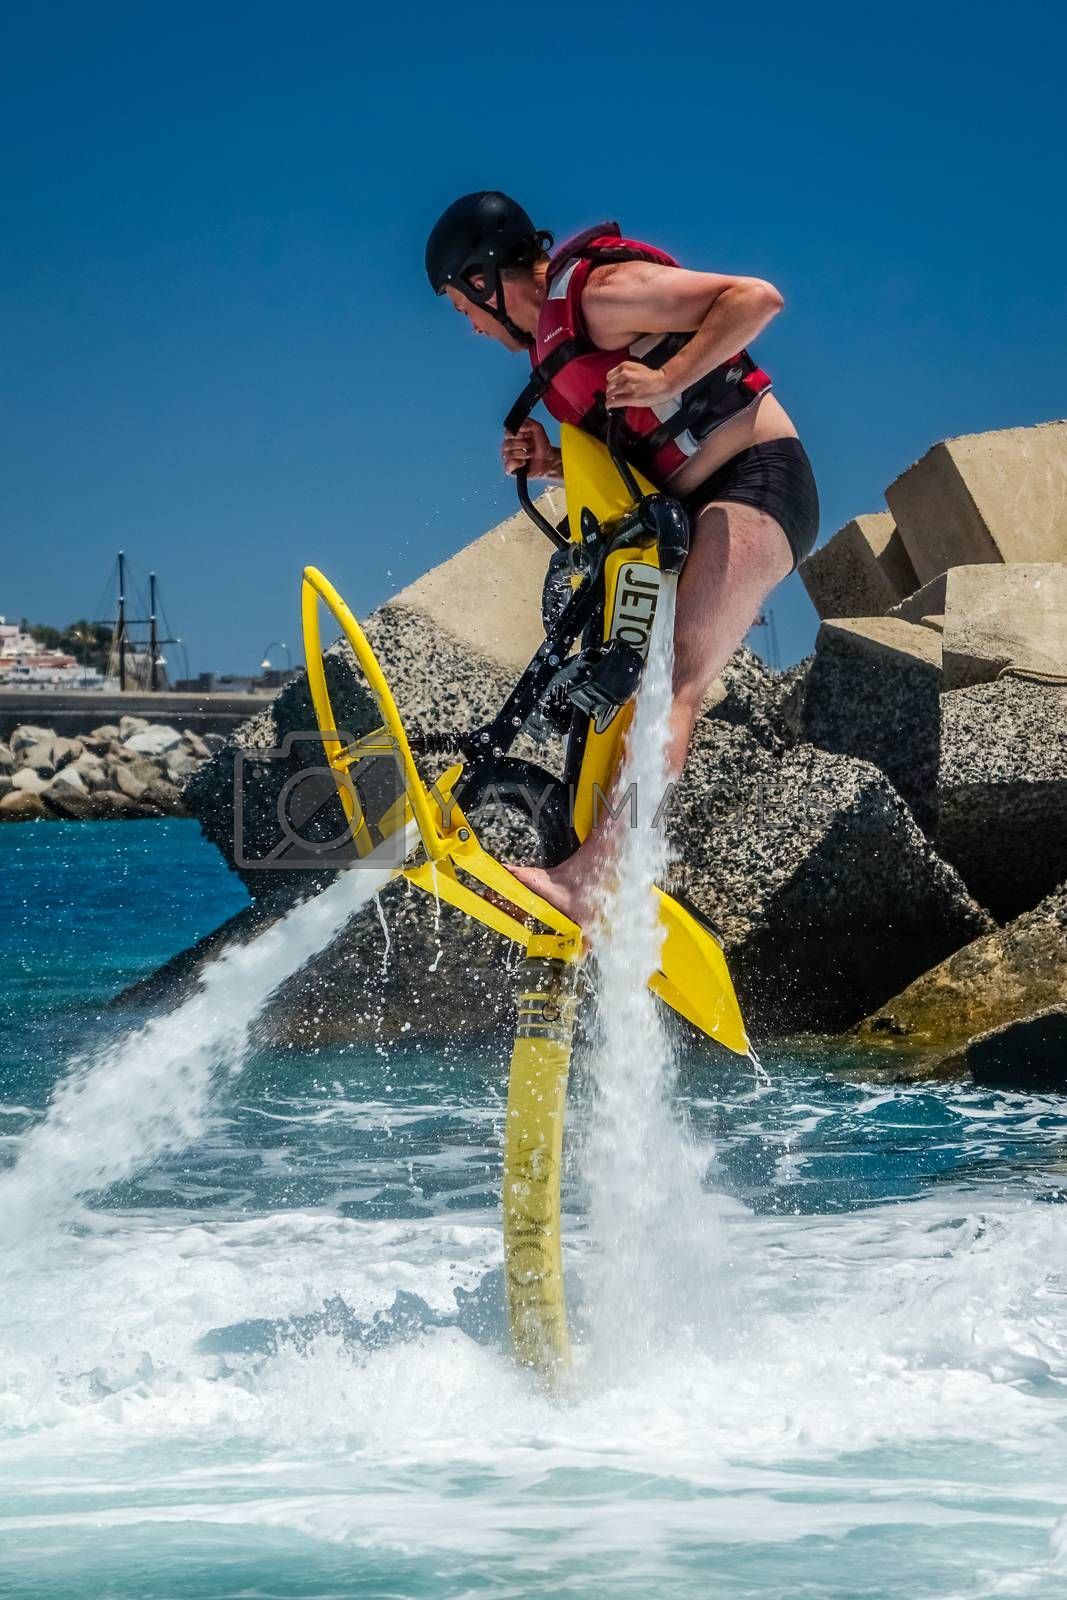 Man trying to get hovering above water on a jet ski in Gran Canaria, Spain. Picture taken on the 8th May 2015.